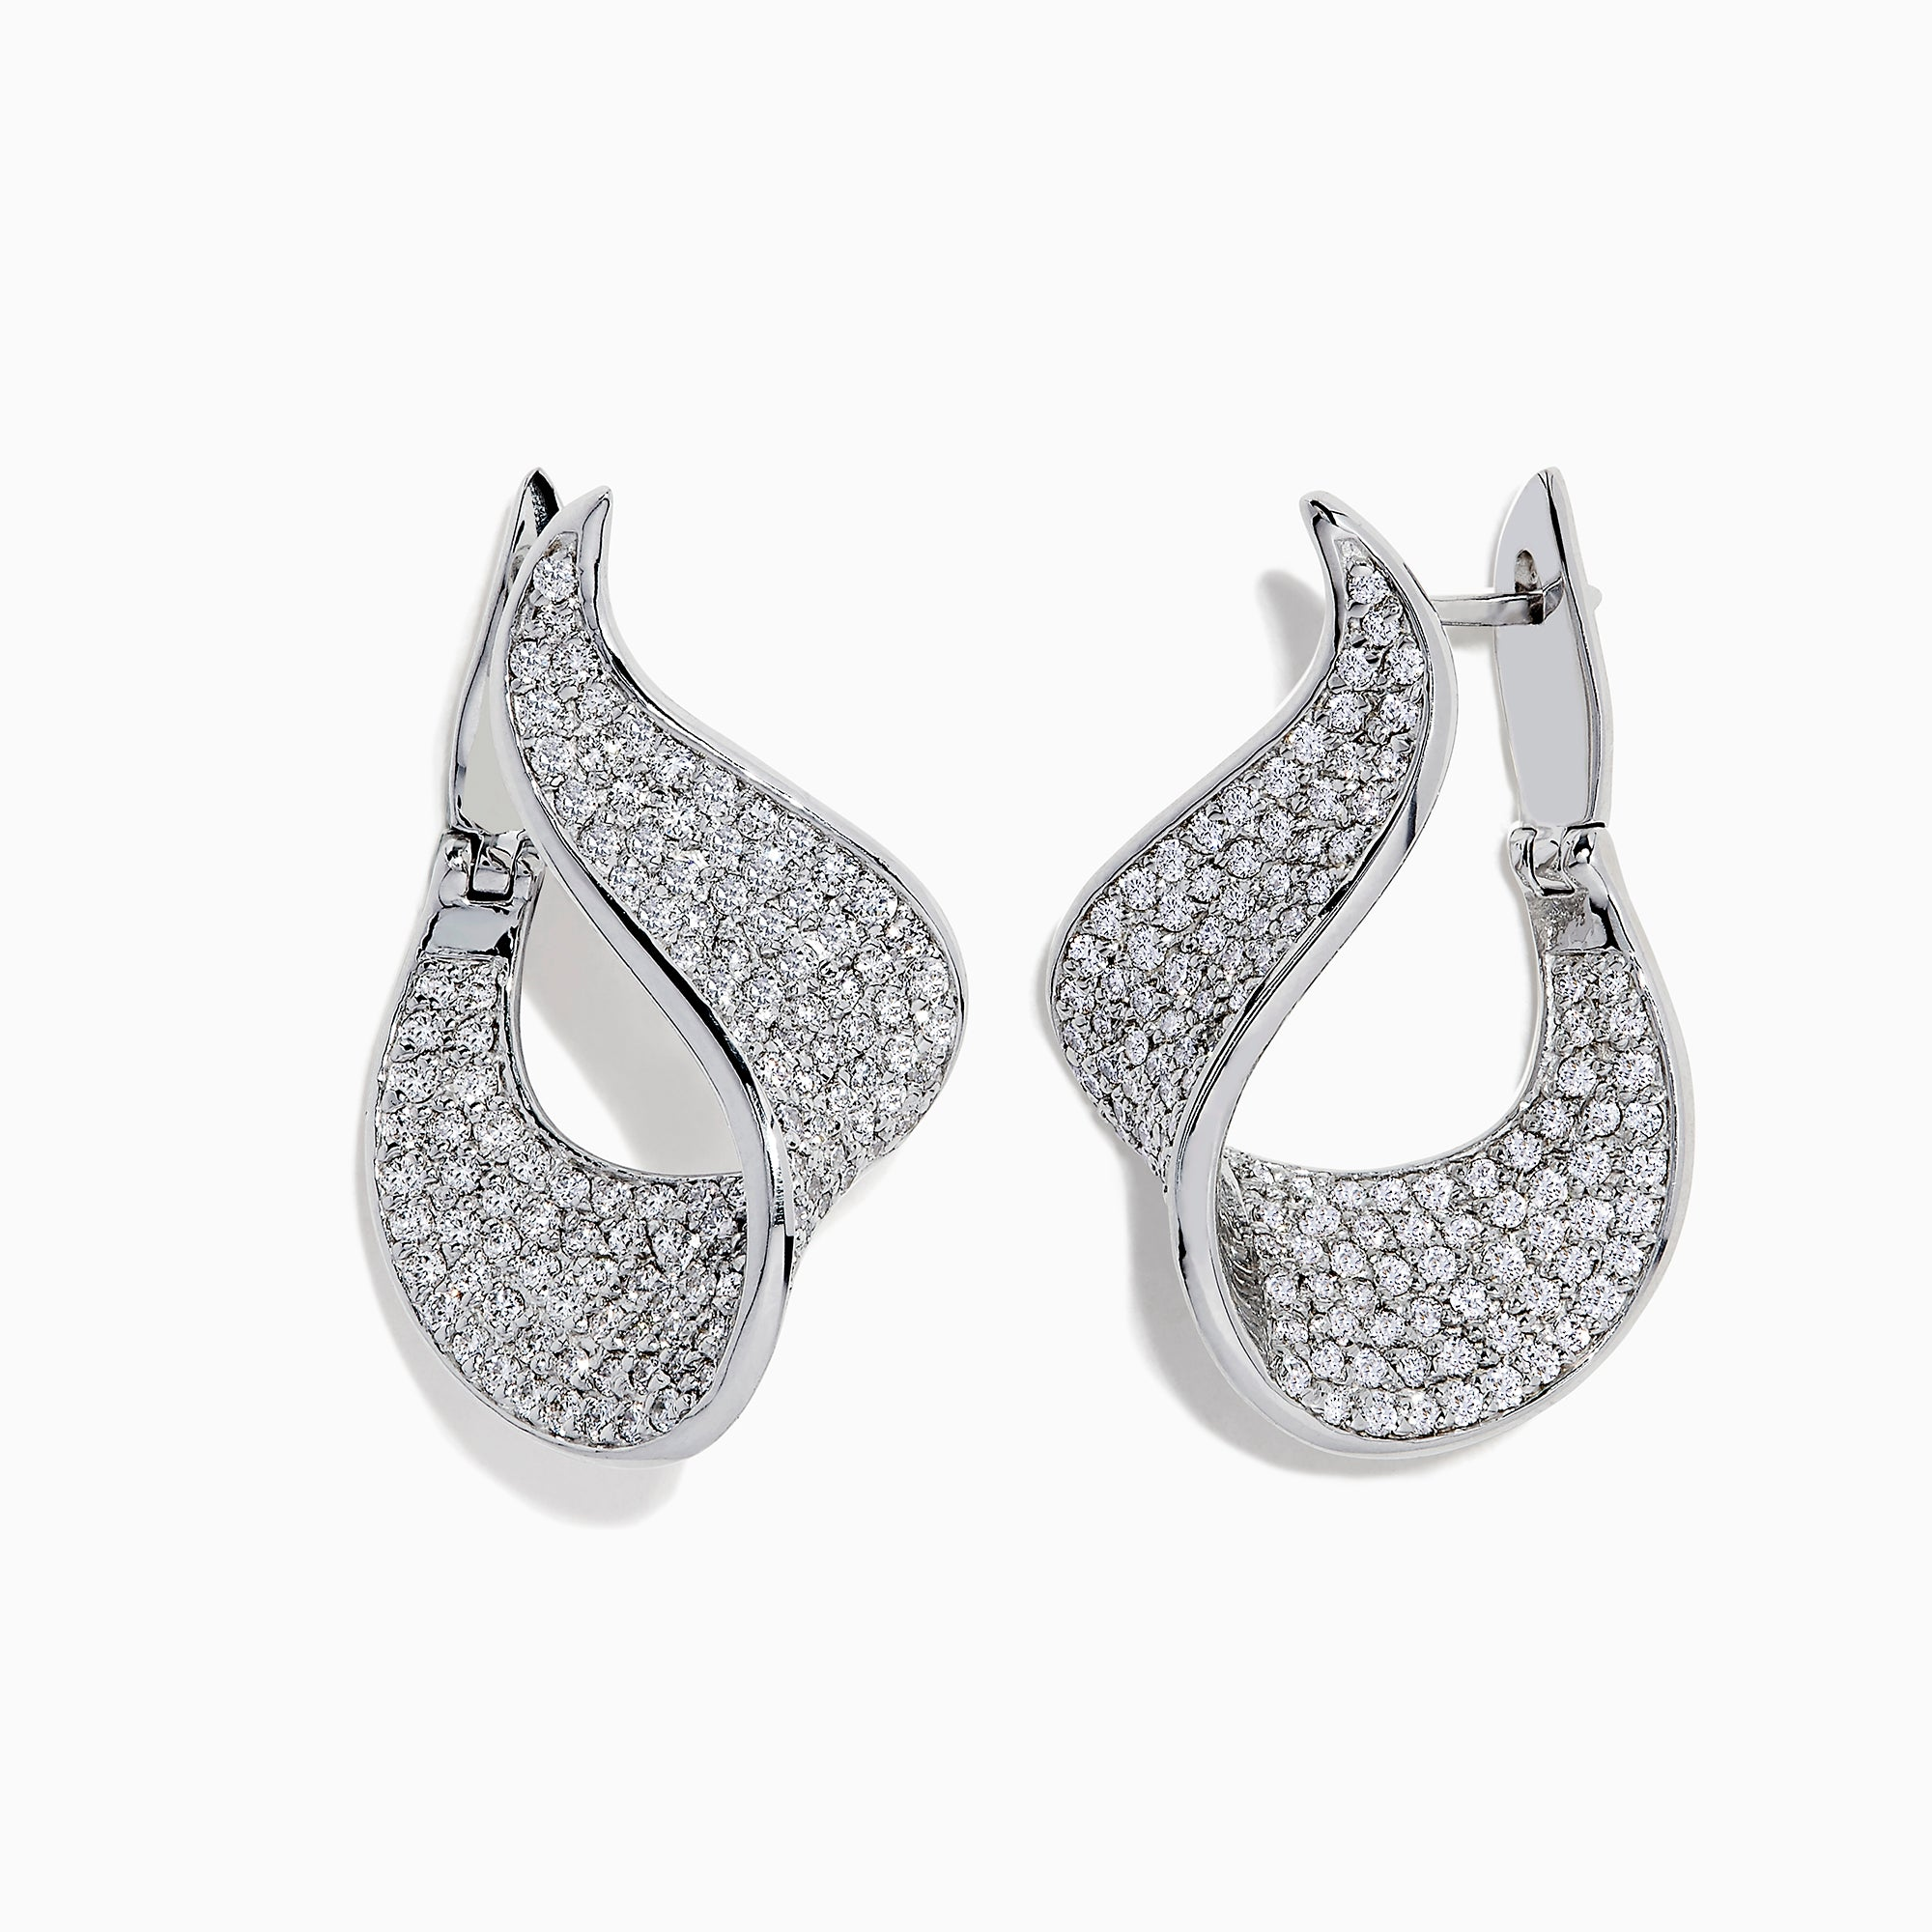 Effy Pave Classica 14 Karat White Gold Diamond Earrings, 2.25 TCW